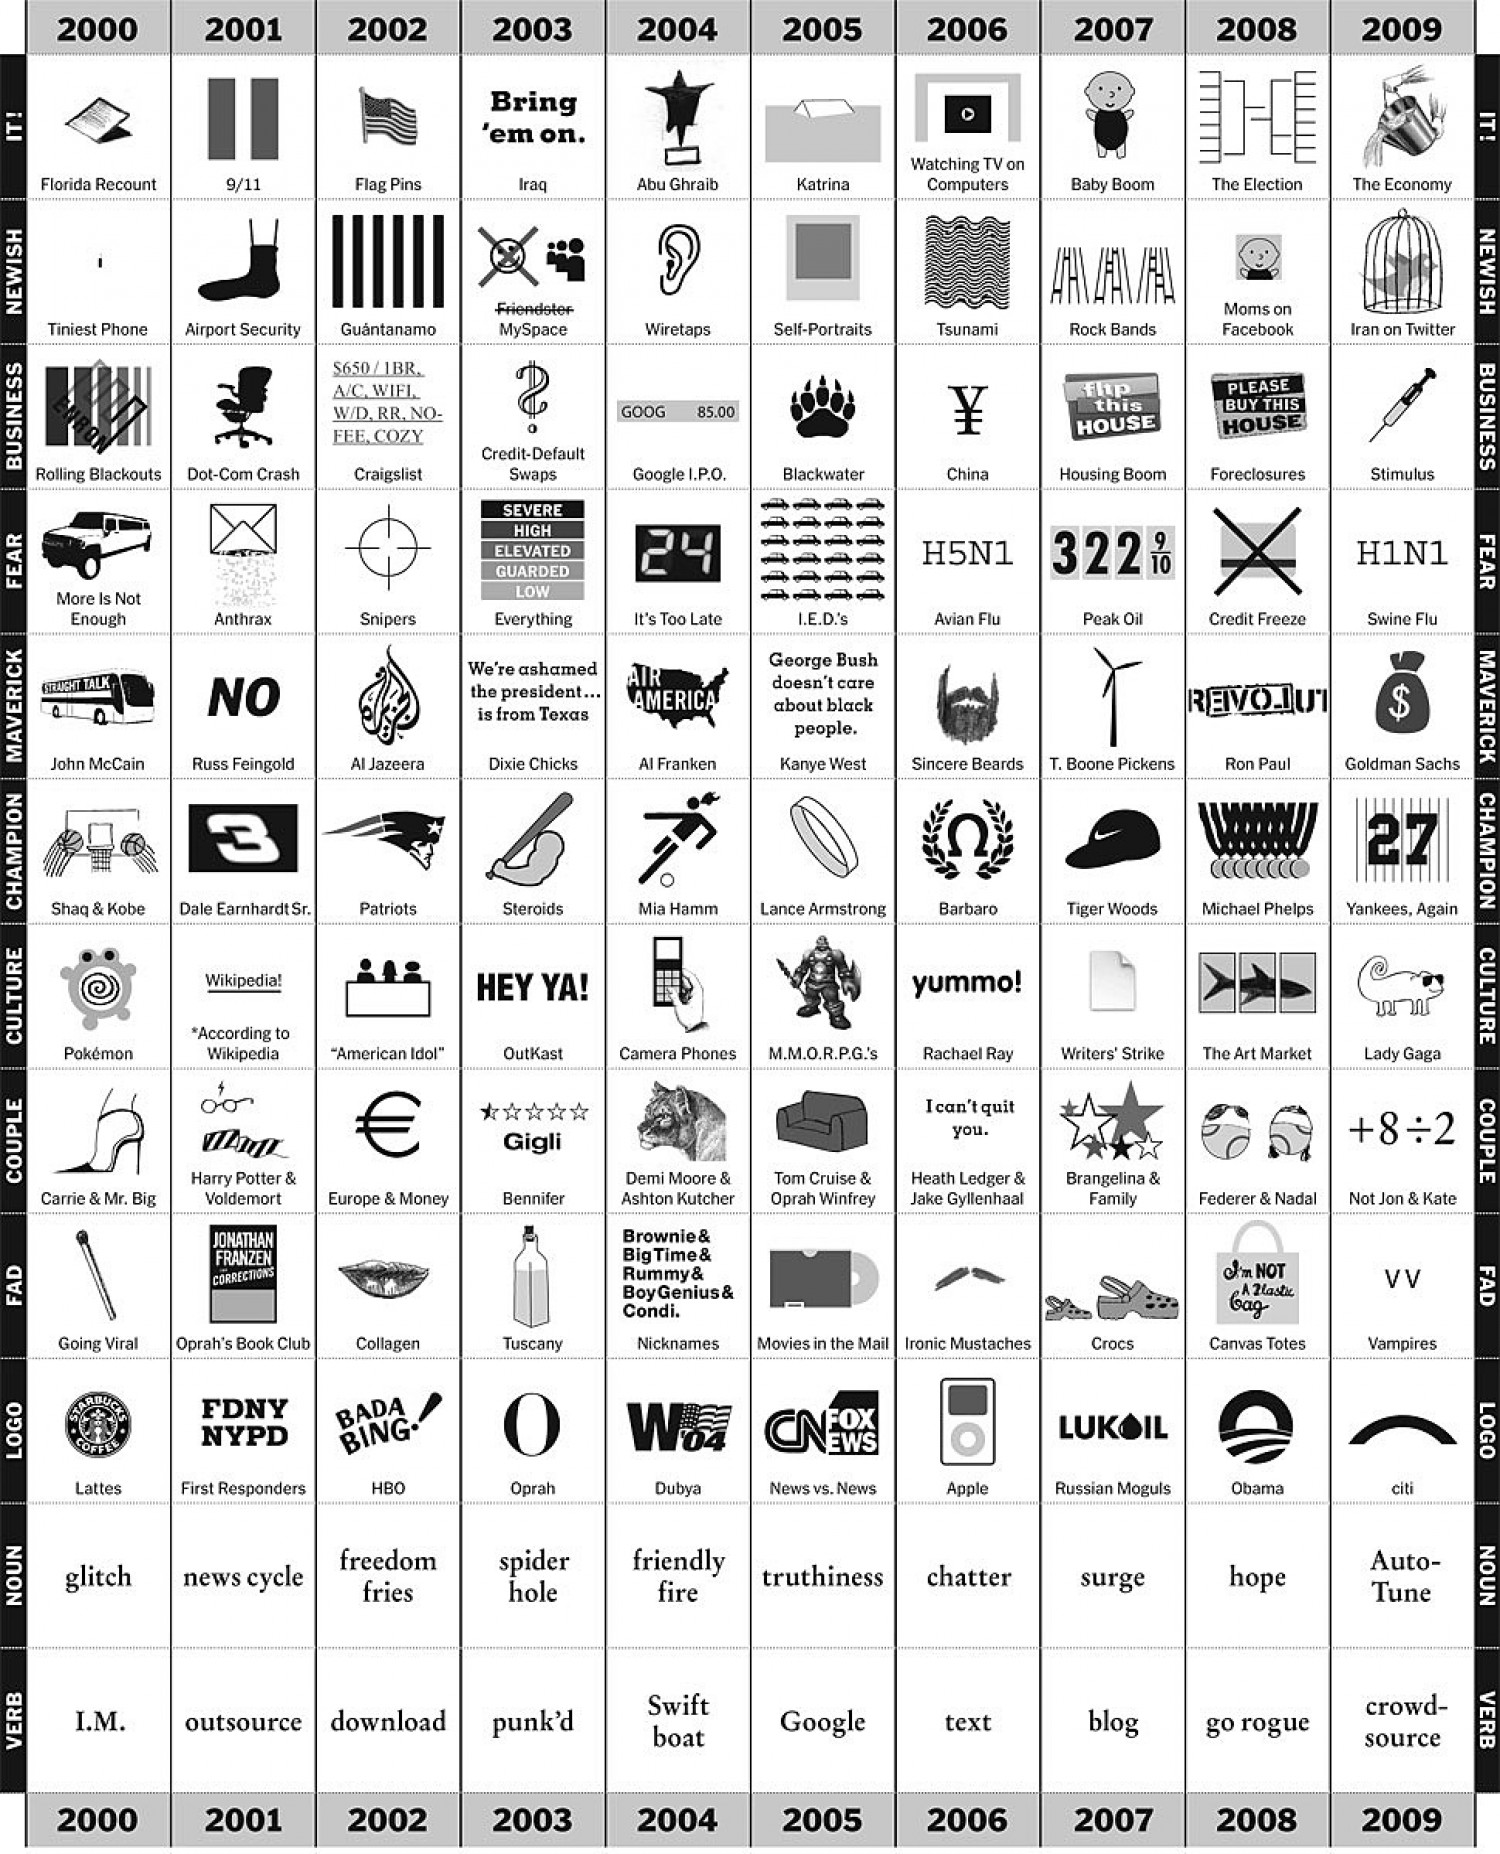 Picturing the Past 10 Years Infographic